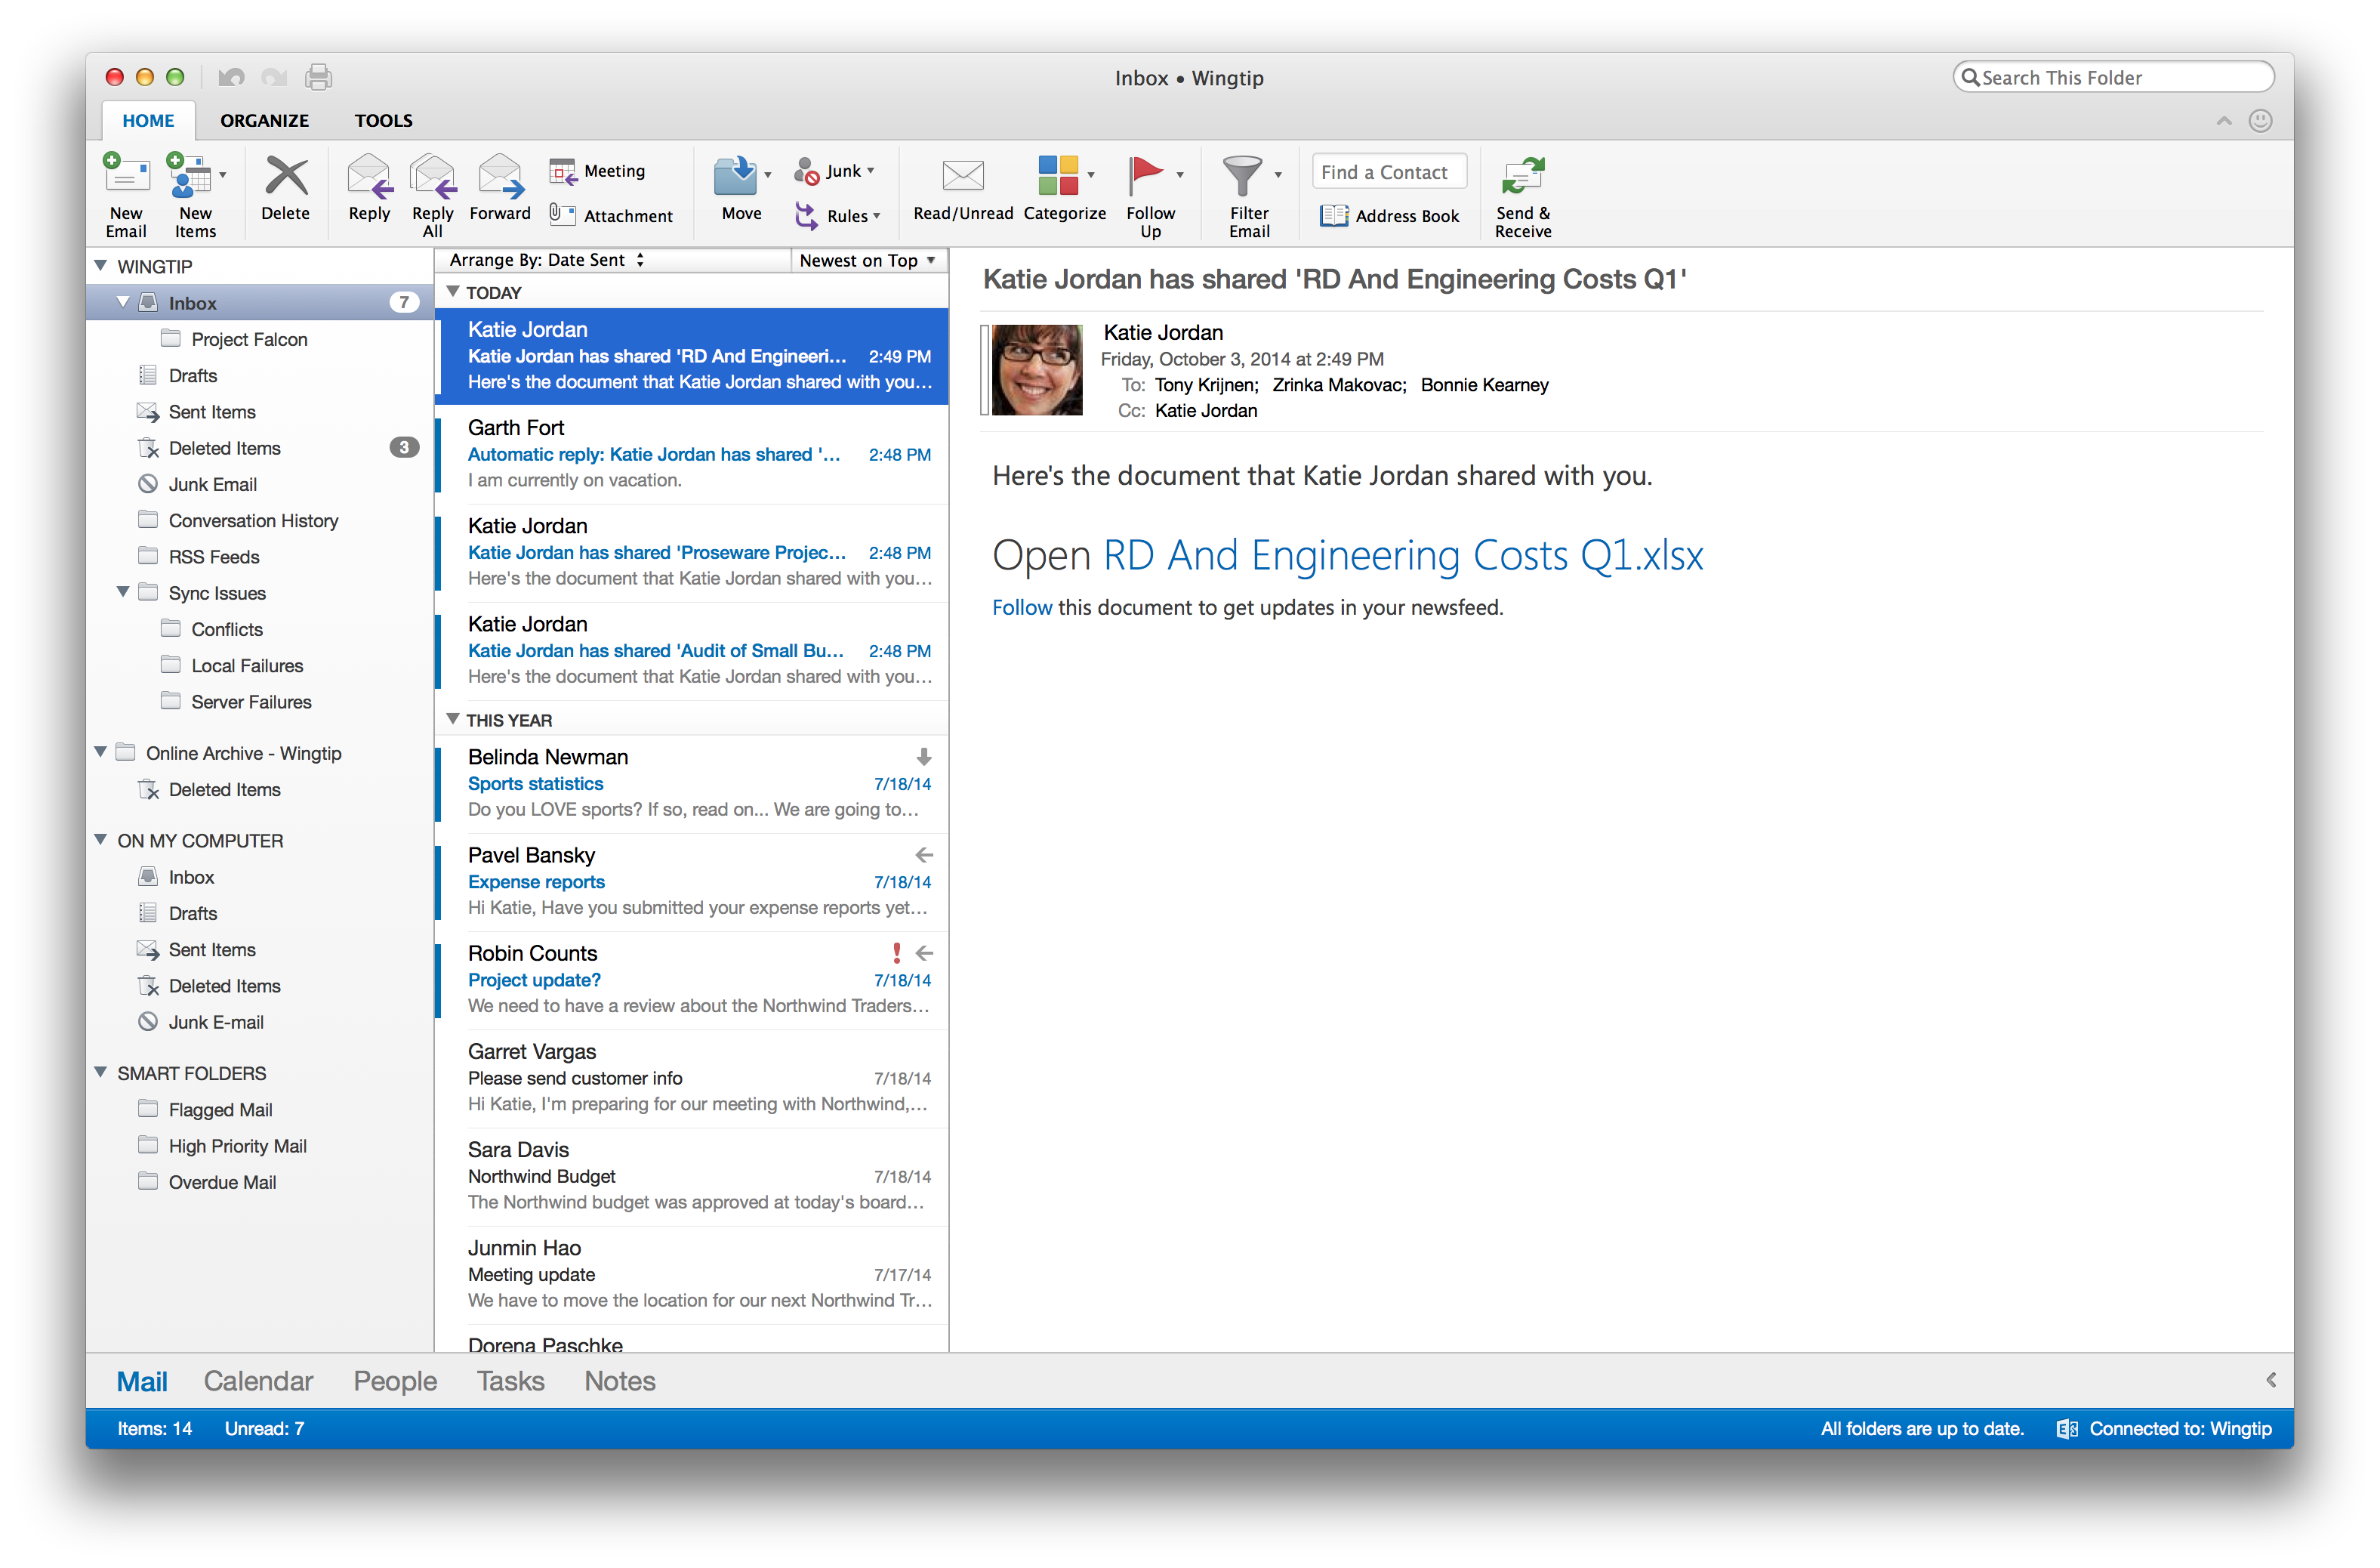 Microsoft is finally going to update Office for Mac, but not until the second half of 2015